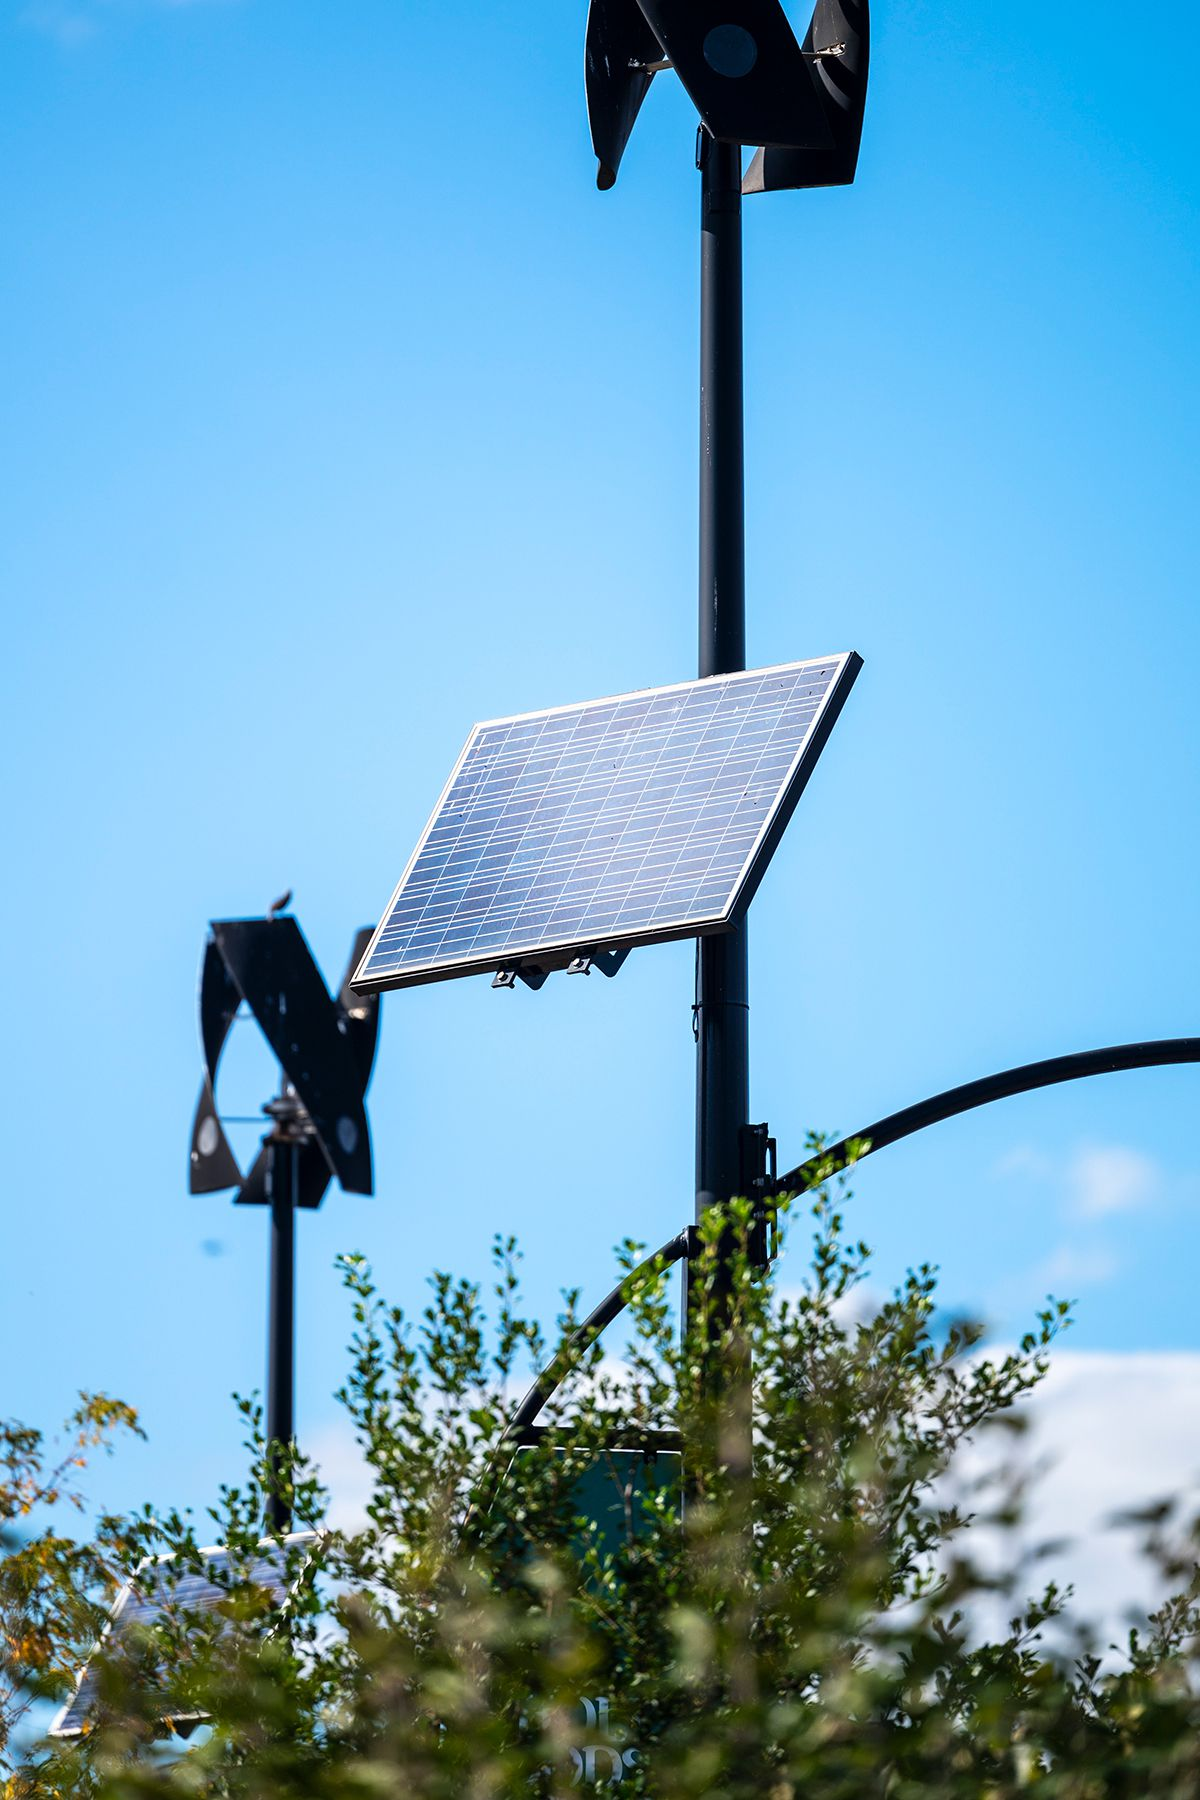 Solar panels dotted the Whole Foods parking lot in Gowanus, Brooklyn, Oct. 1, 2021.